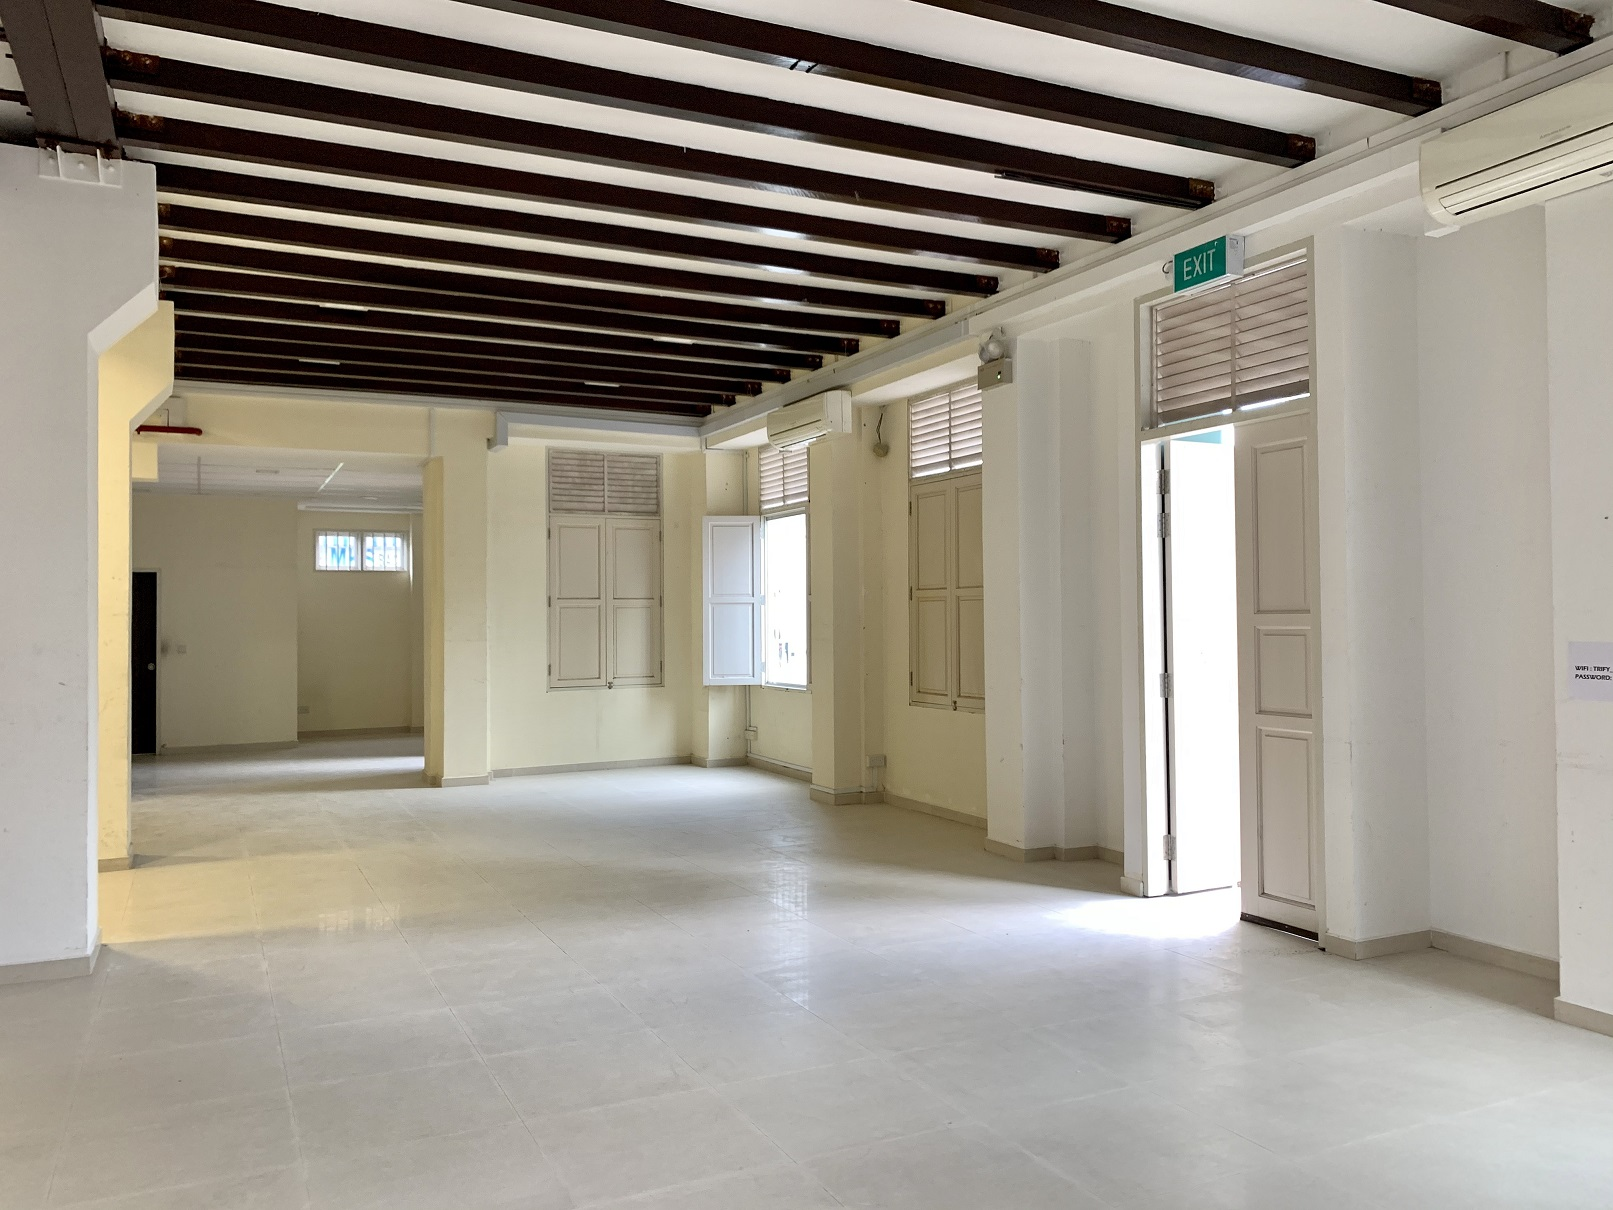 The first level of the shophouse has been approved for F&B use (Photo: Pearly Tan/PropNex Realty)